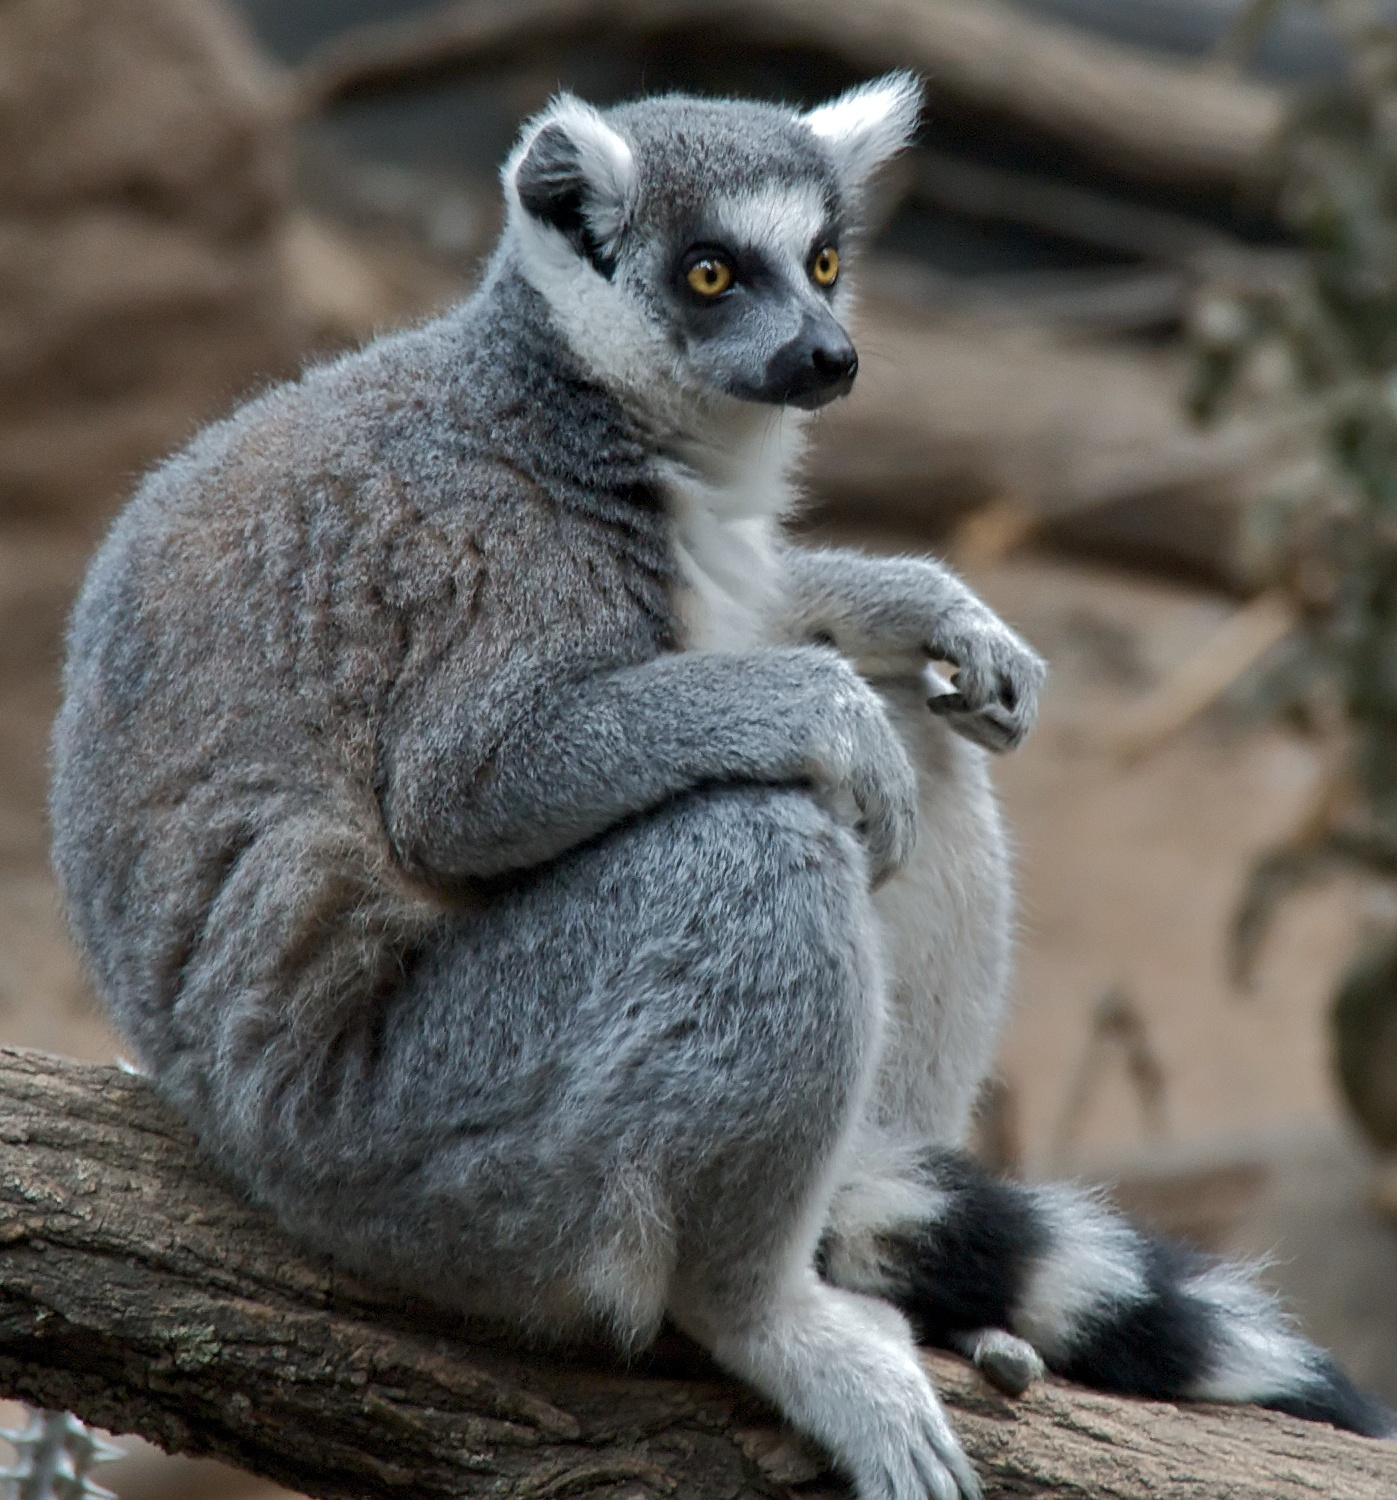 Description Ring tailed Lemur Lemur catta at Bronx Zoo 1 cropped.jpg